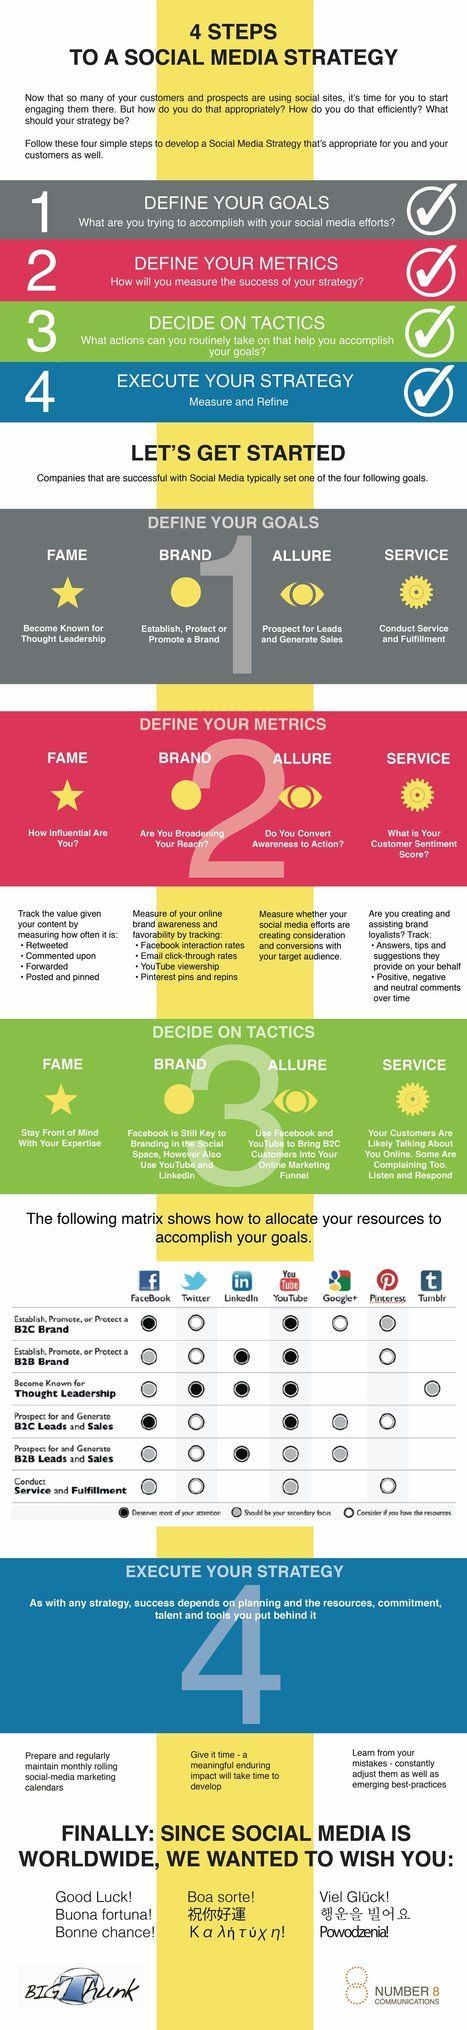 4 Steps to Social Media Marketing Strategy. #infographic